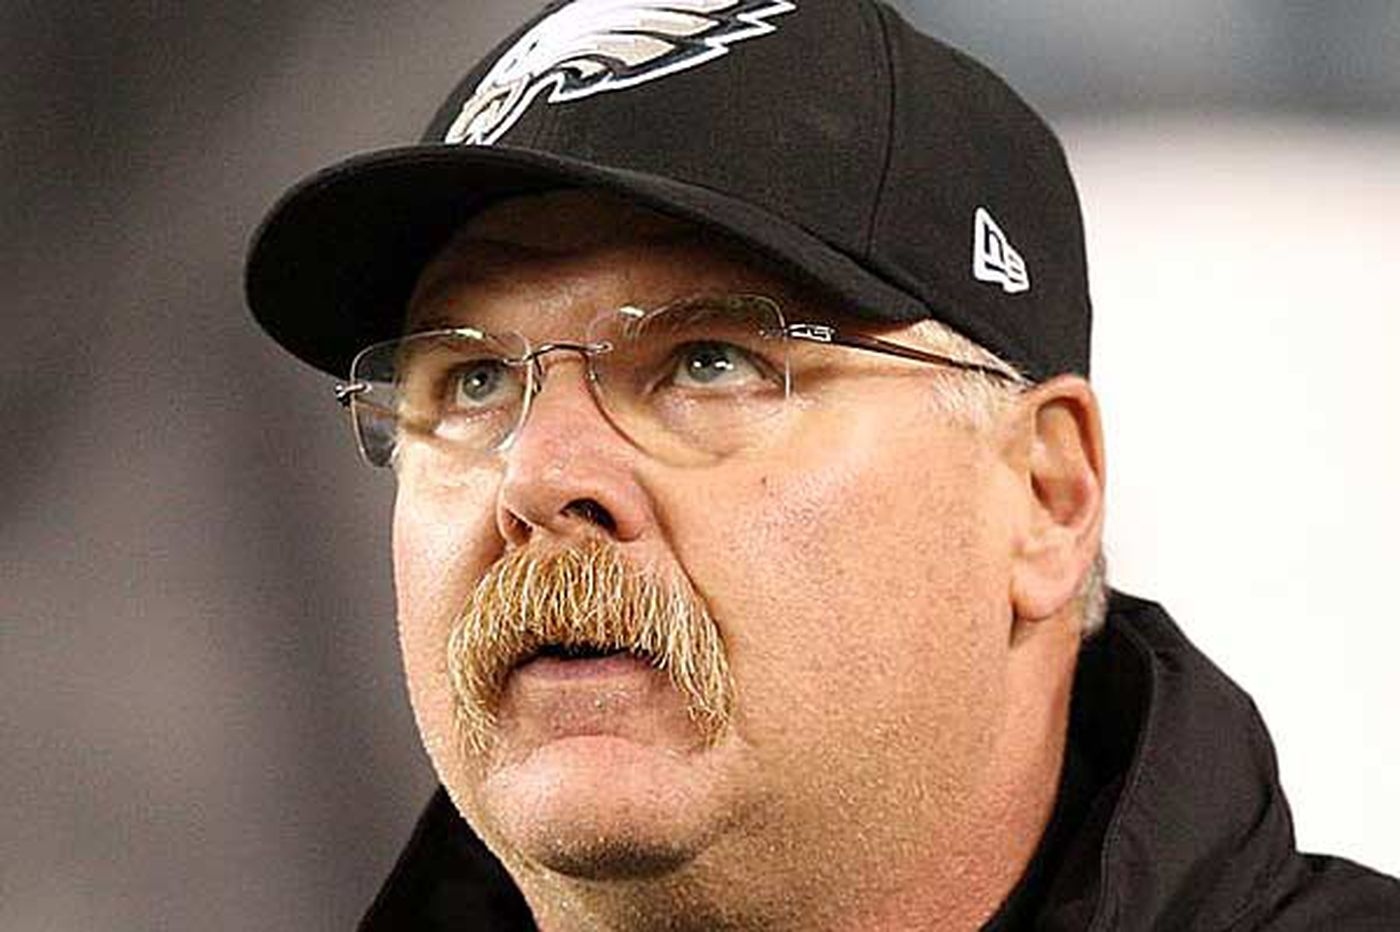 Sincerely, Andy Reid won't be back